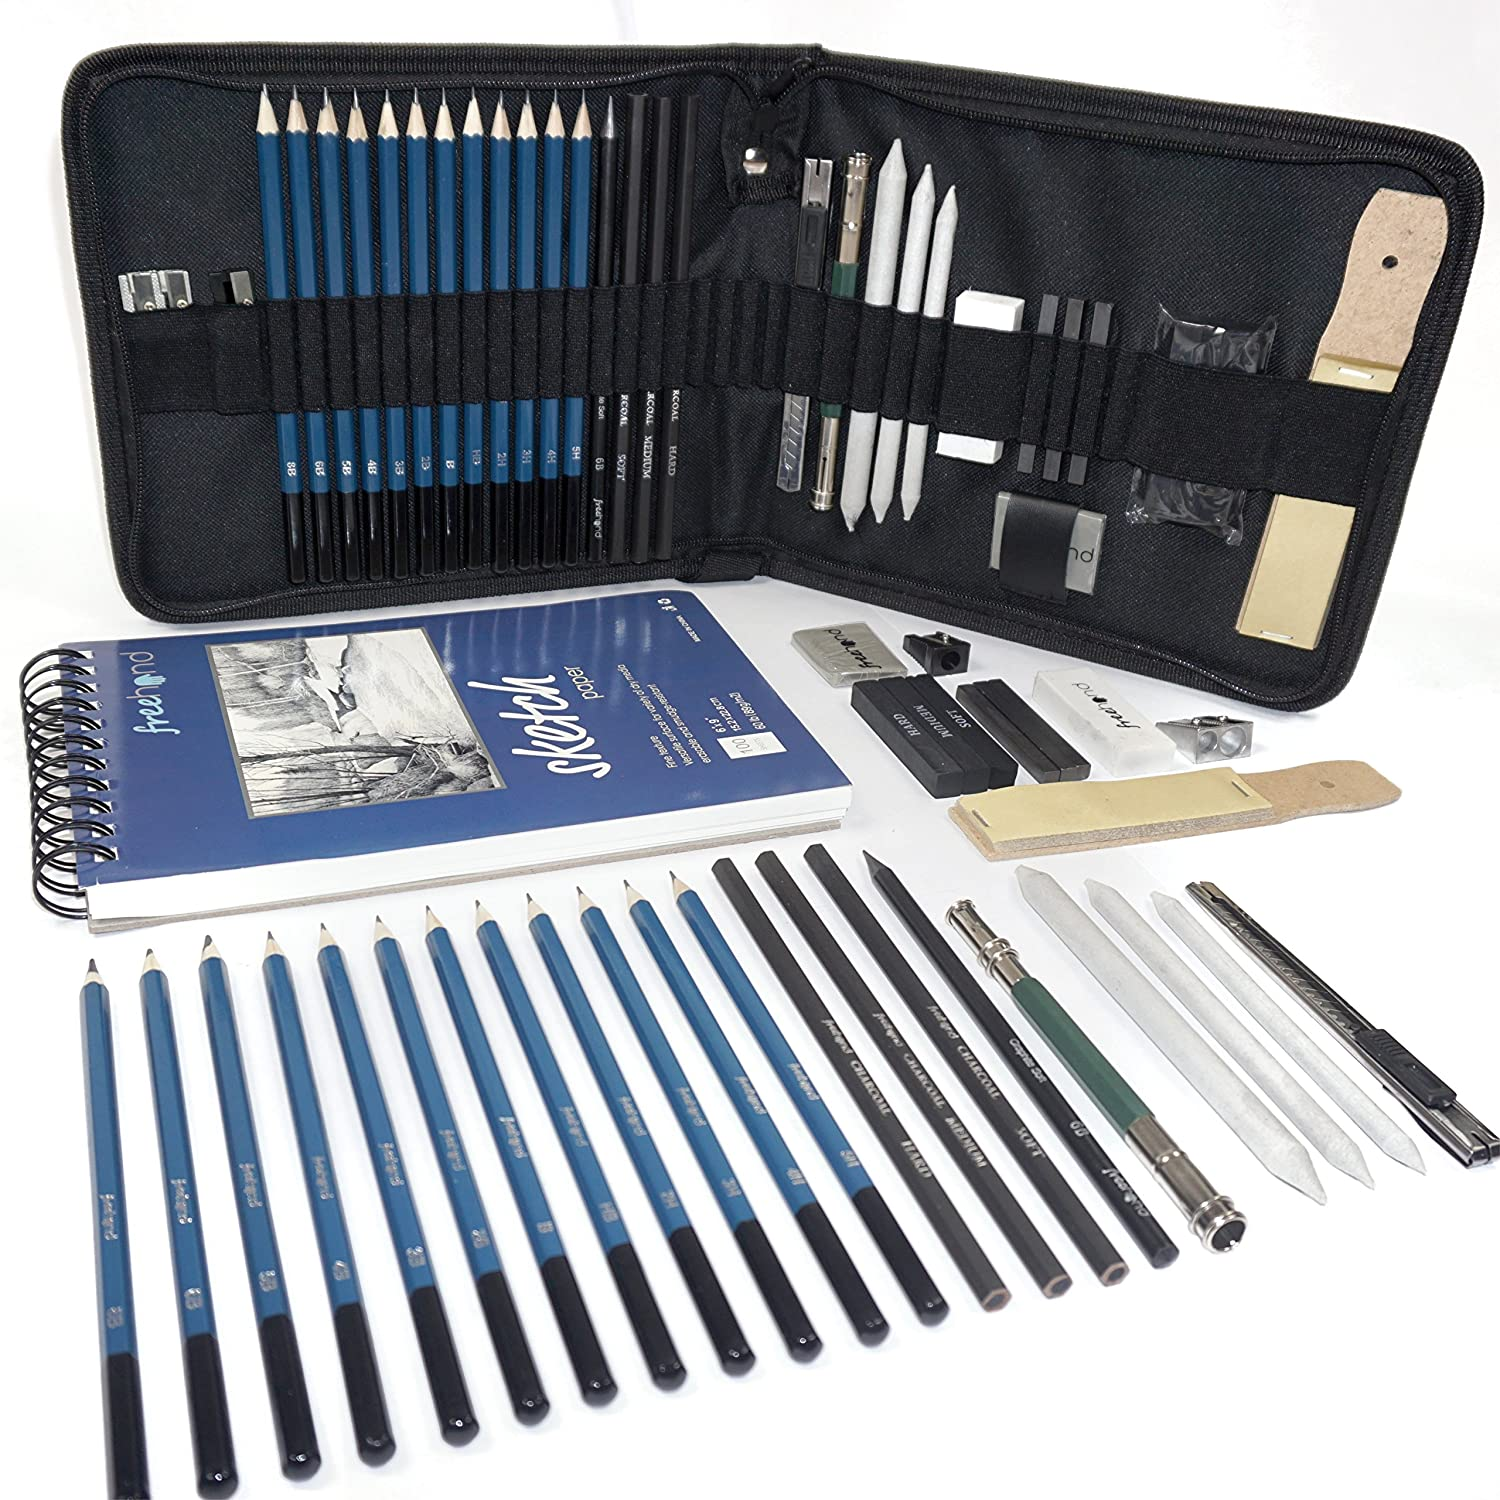 Professional Art Set - Drawing, Sketching and Charcoal Pencils. 100 Page Drawing Pad. Kneaded Eraser included. Art Kit for Kids, Teens and Adults Free Hand 4336945587